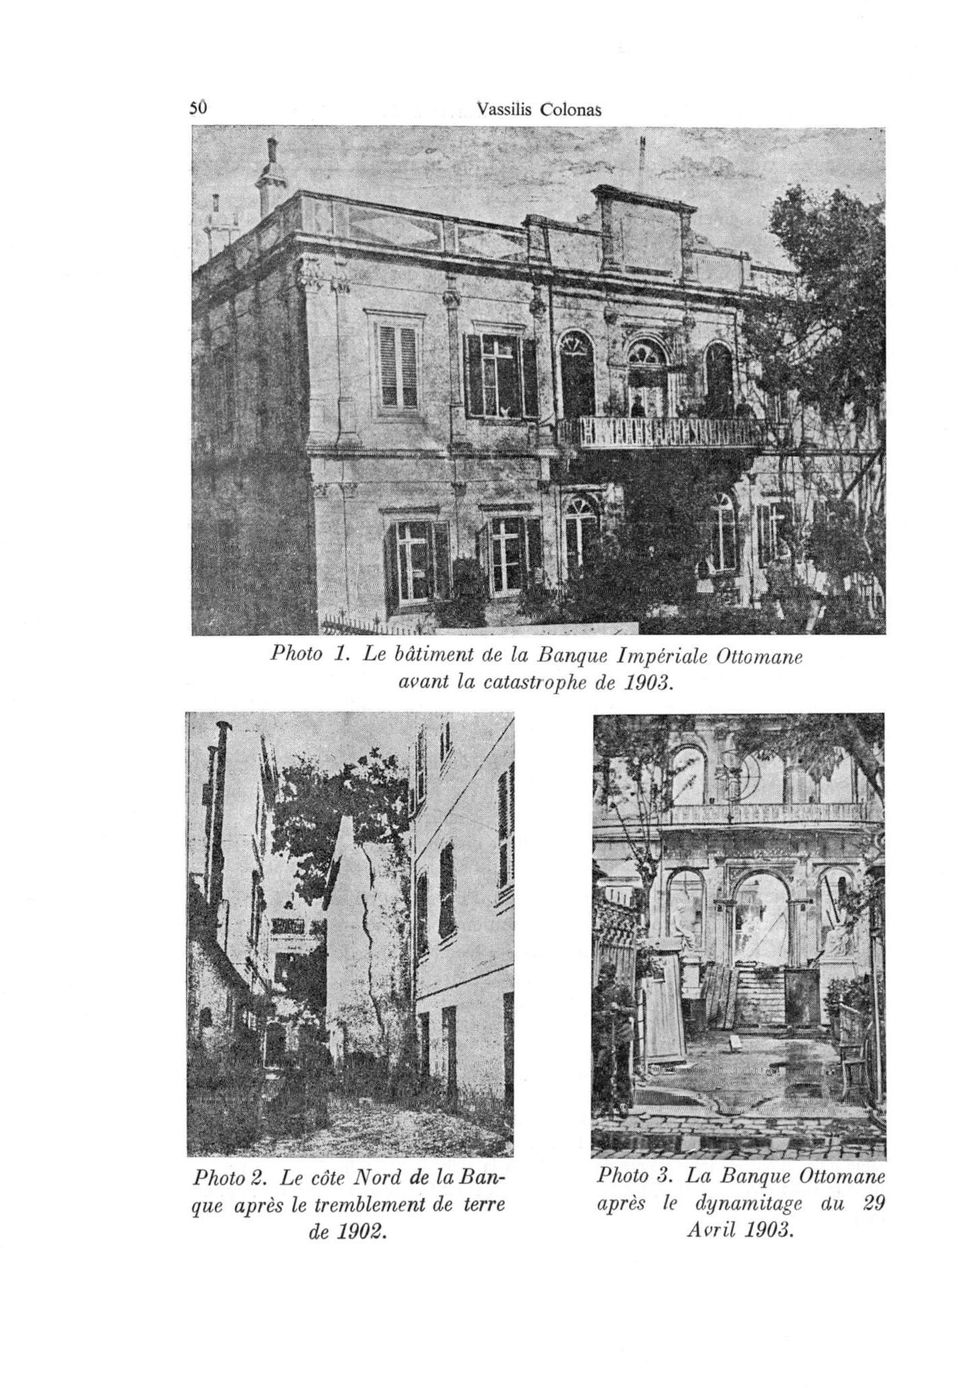 catastrophe de 1903. Photo 2.